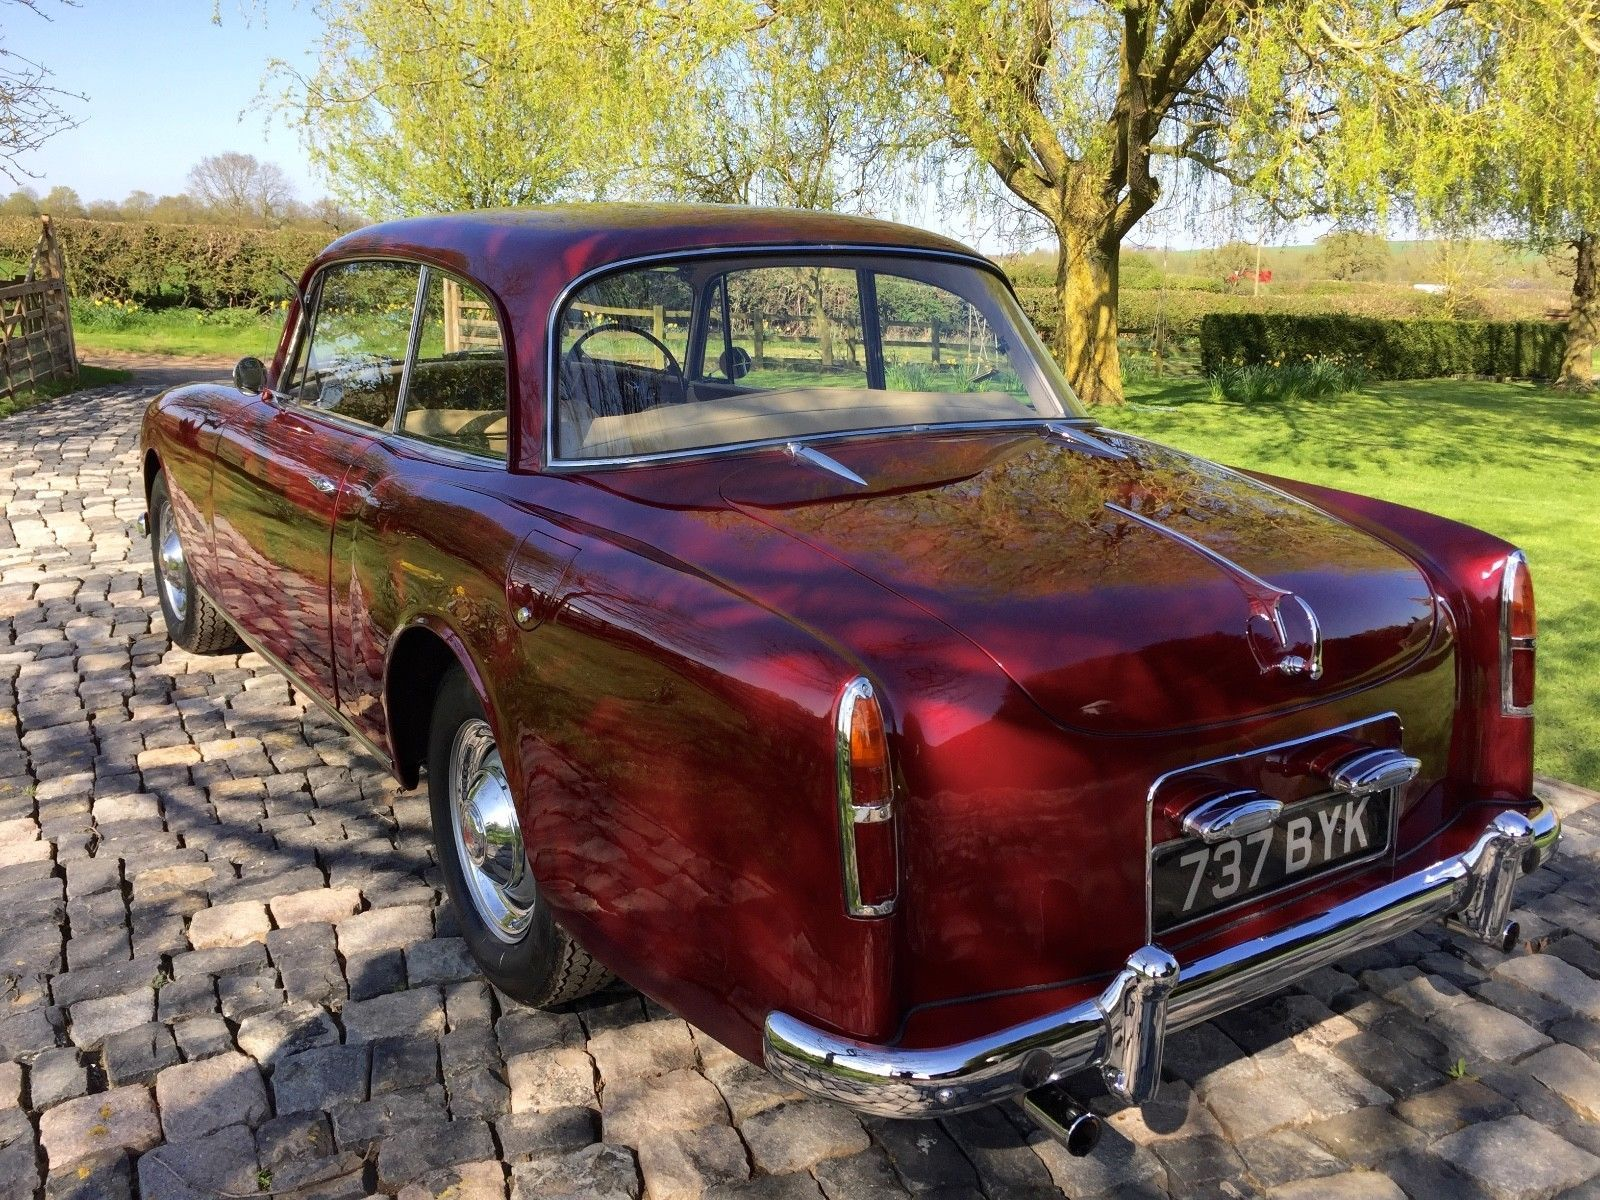 eBay: 1961 Alvis TD21 , manual, 15,700 miles, true 50s gentlemans sports  coupe #classiccars #cars